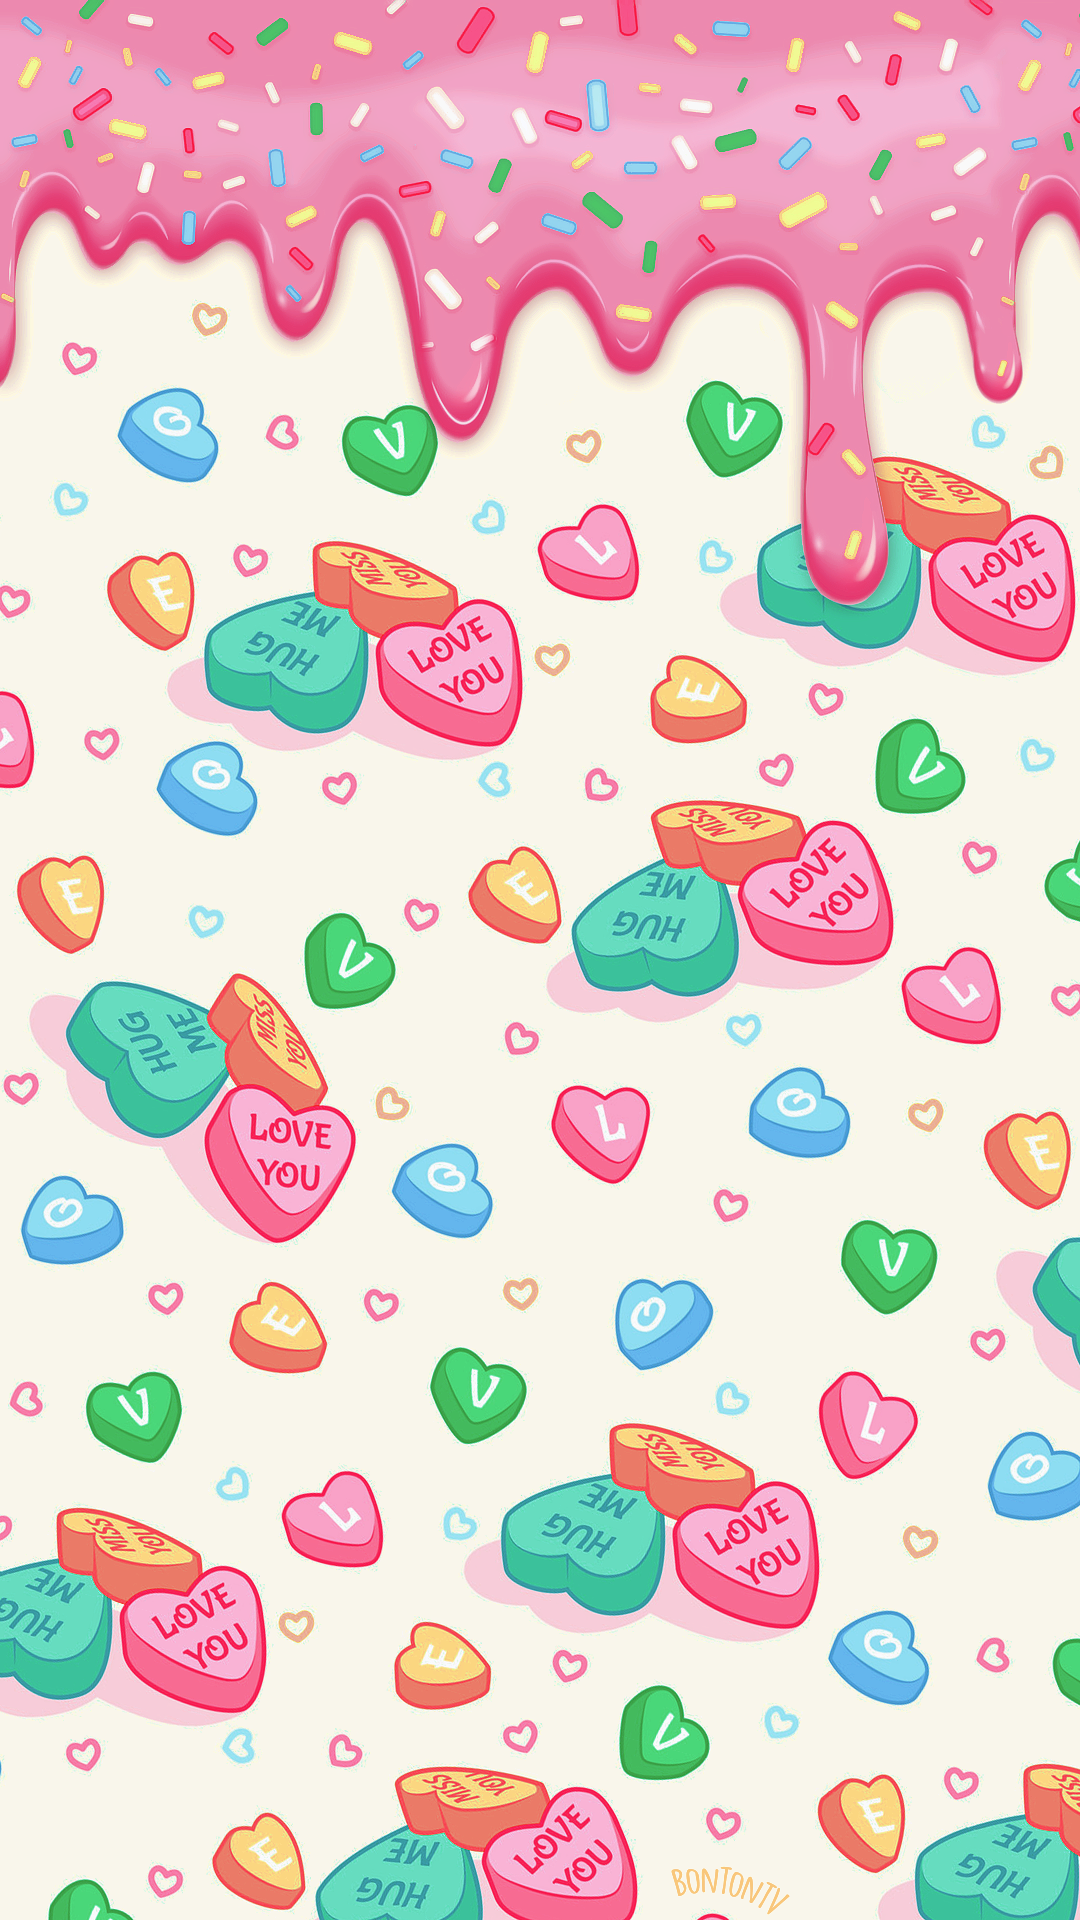 Hd Colorful Phone Wallpapers Candy By Bonton Tv Free Backgrounds 1080x1920 Wallp Valentines Wallpaper Valentines Wallpaper Iphone Artsy Wallpaper Iphone